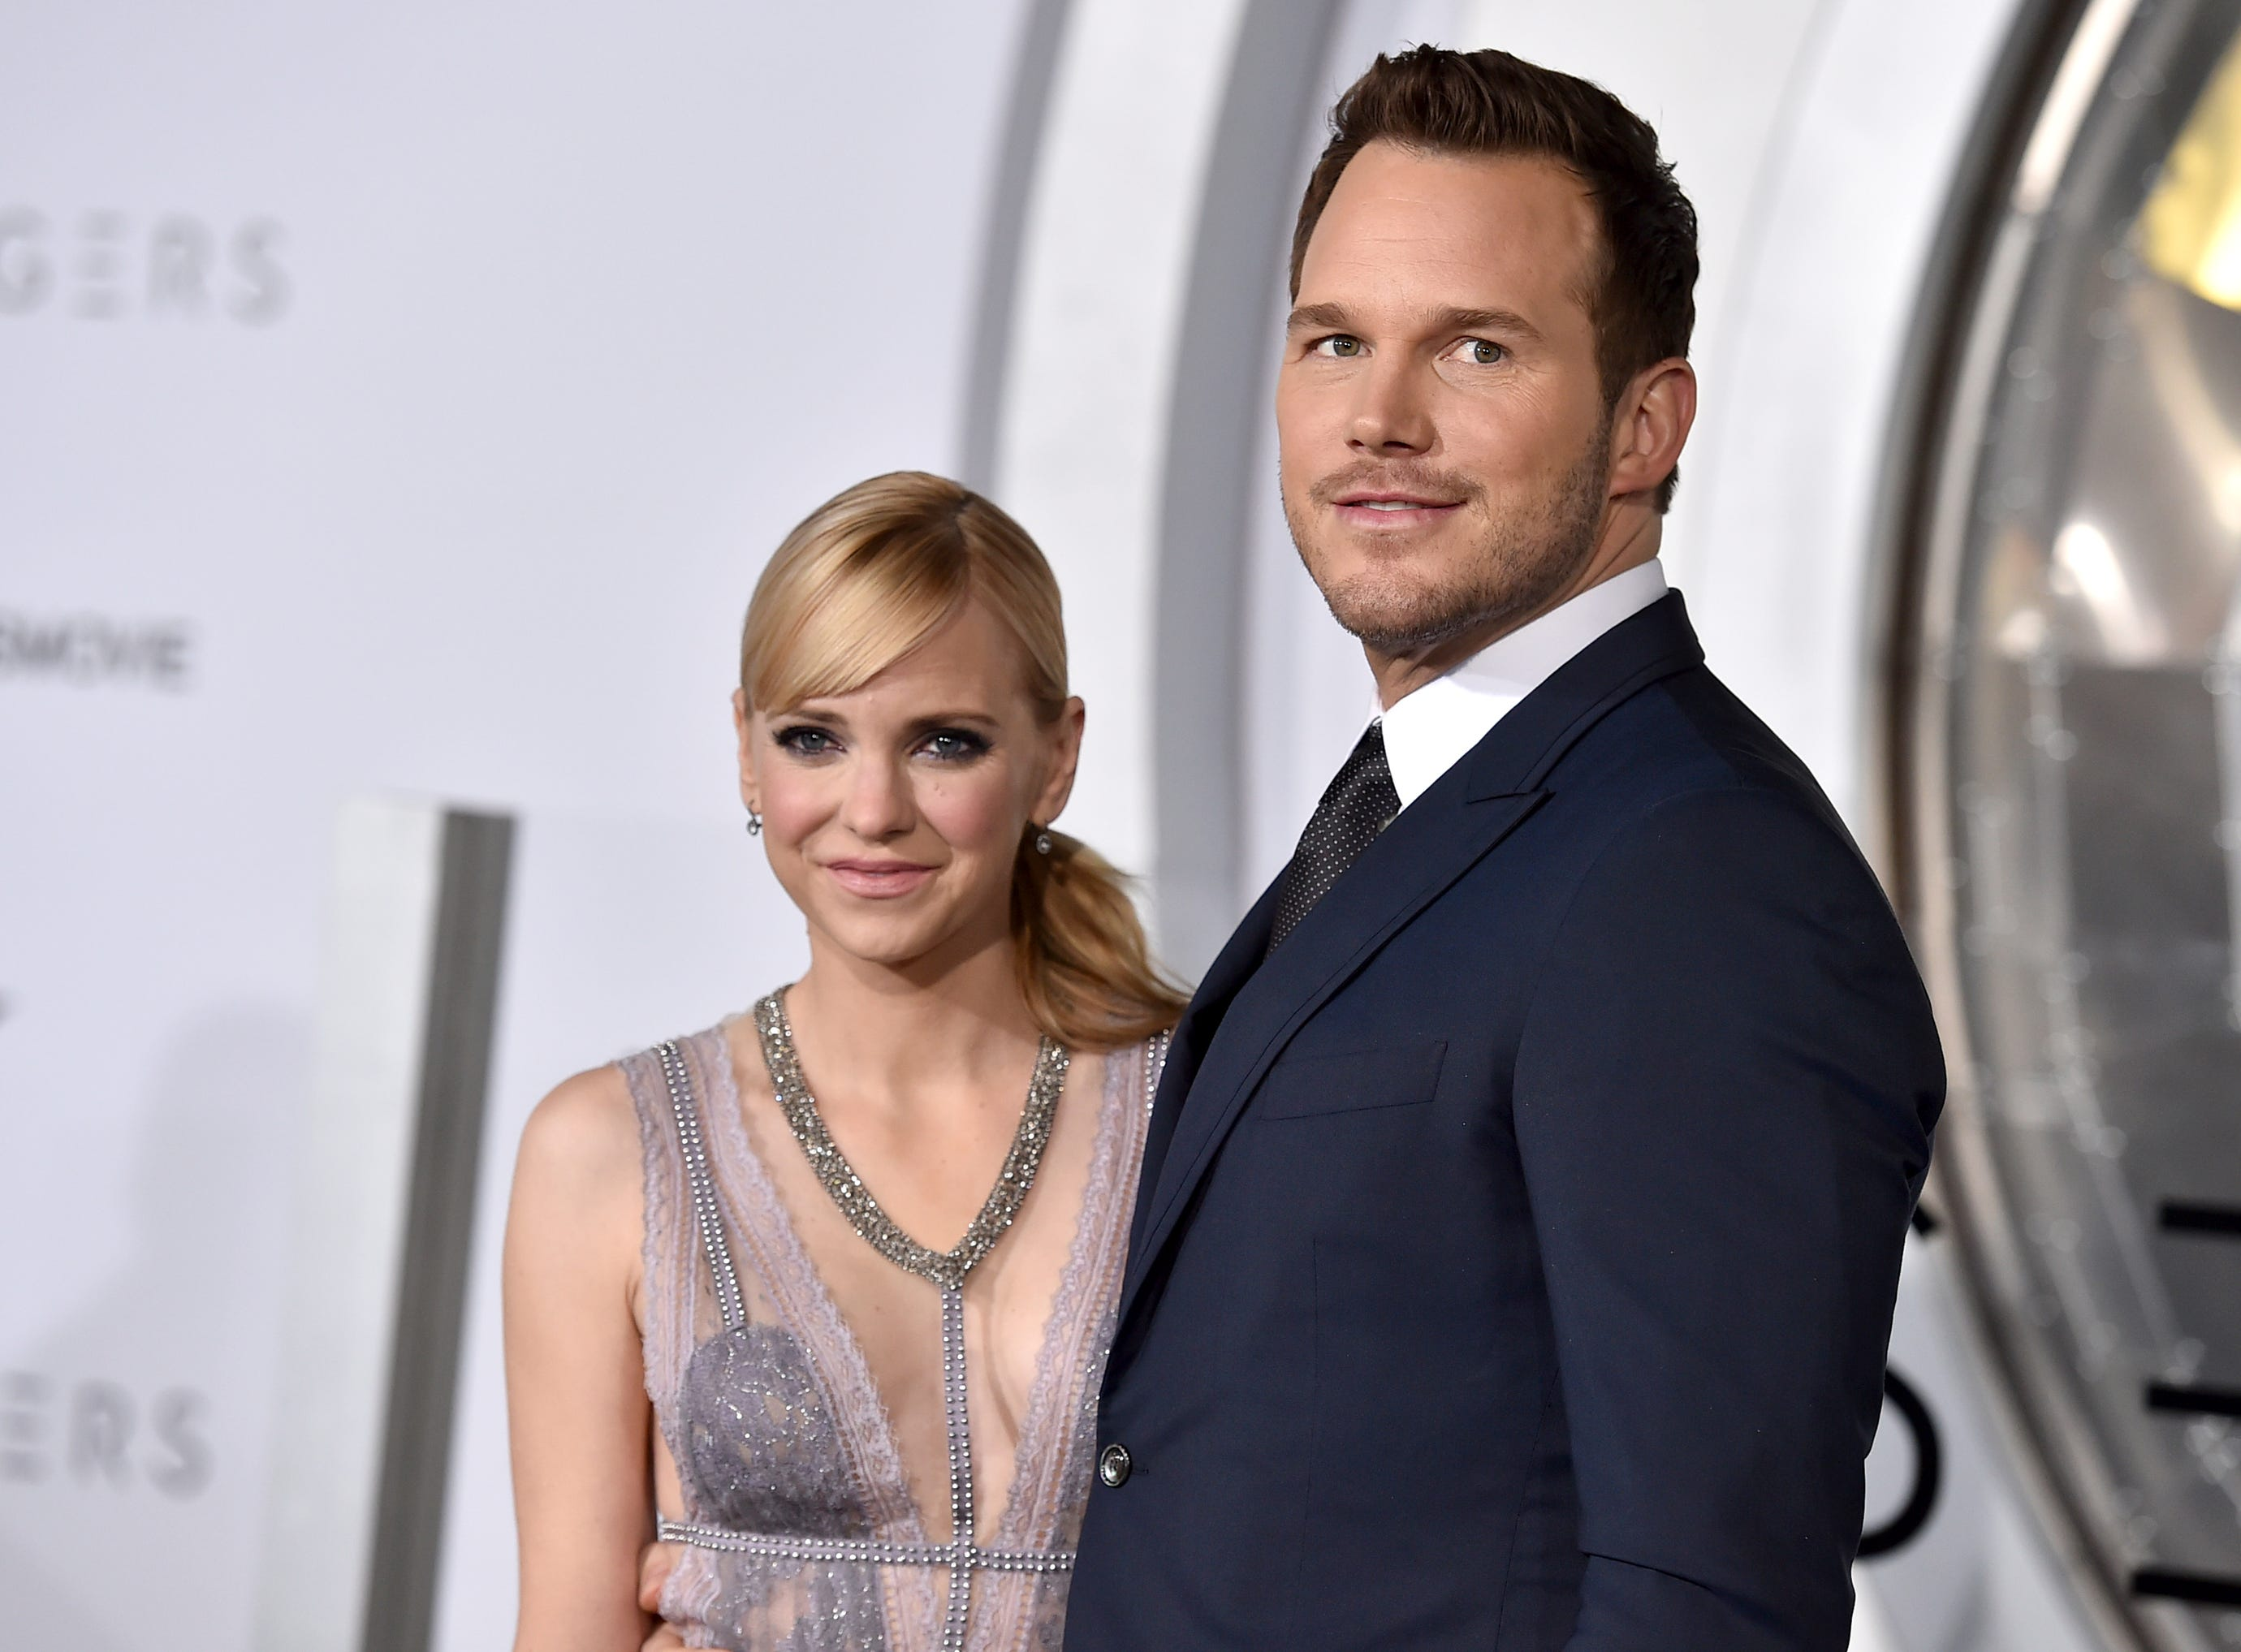 "FILE- In this Dec. 14, 2016, file photo, Chris Pratt, right, and Anna Faris arrive at the Los Angeles premiere of ""Passengers""at the Village Theatre Westwood. Pratt and Faris have announced they are separating after eight years of marriage. The actors announced their breakup on social media Sunday, Aug. 6, 2017, in a joint statement confirmed by Pratt's publicist. (Photo by Jordan Strauss/Invision/AP, File) ORG XMIT: NYJK110"